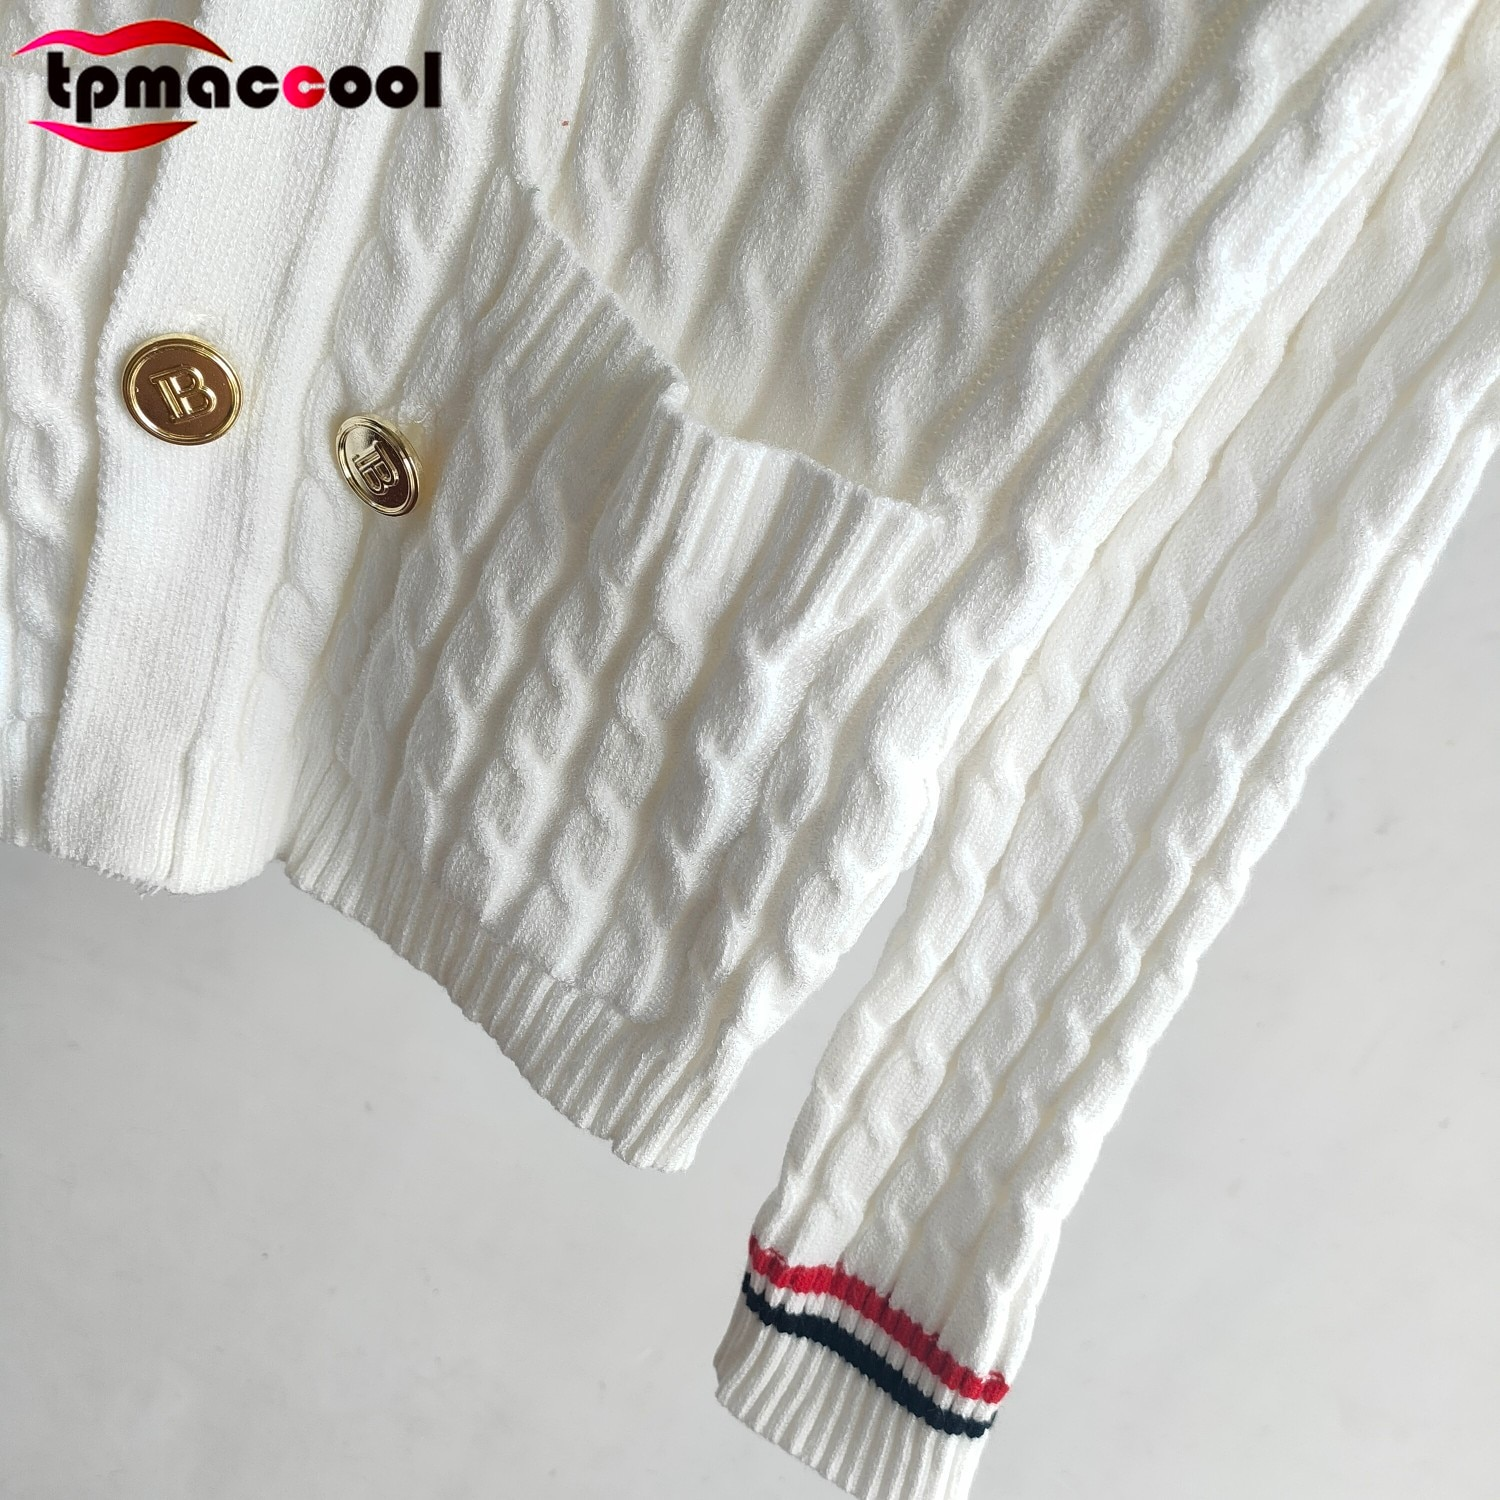 Designer Fashion Fall 2021 Women Vintage White Twist Long Sleeve Metal Letter Logoed Buttons Branded knitted sweater cardigans enlarge